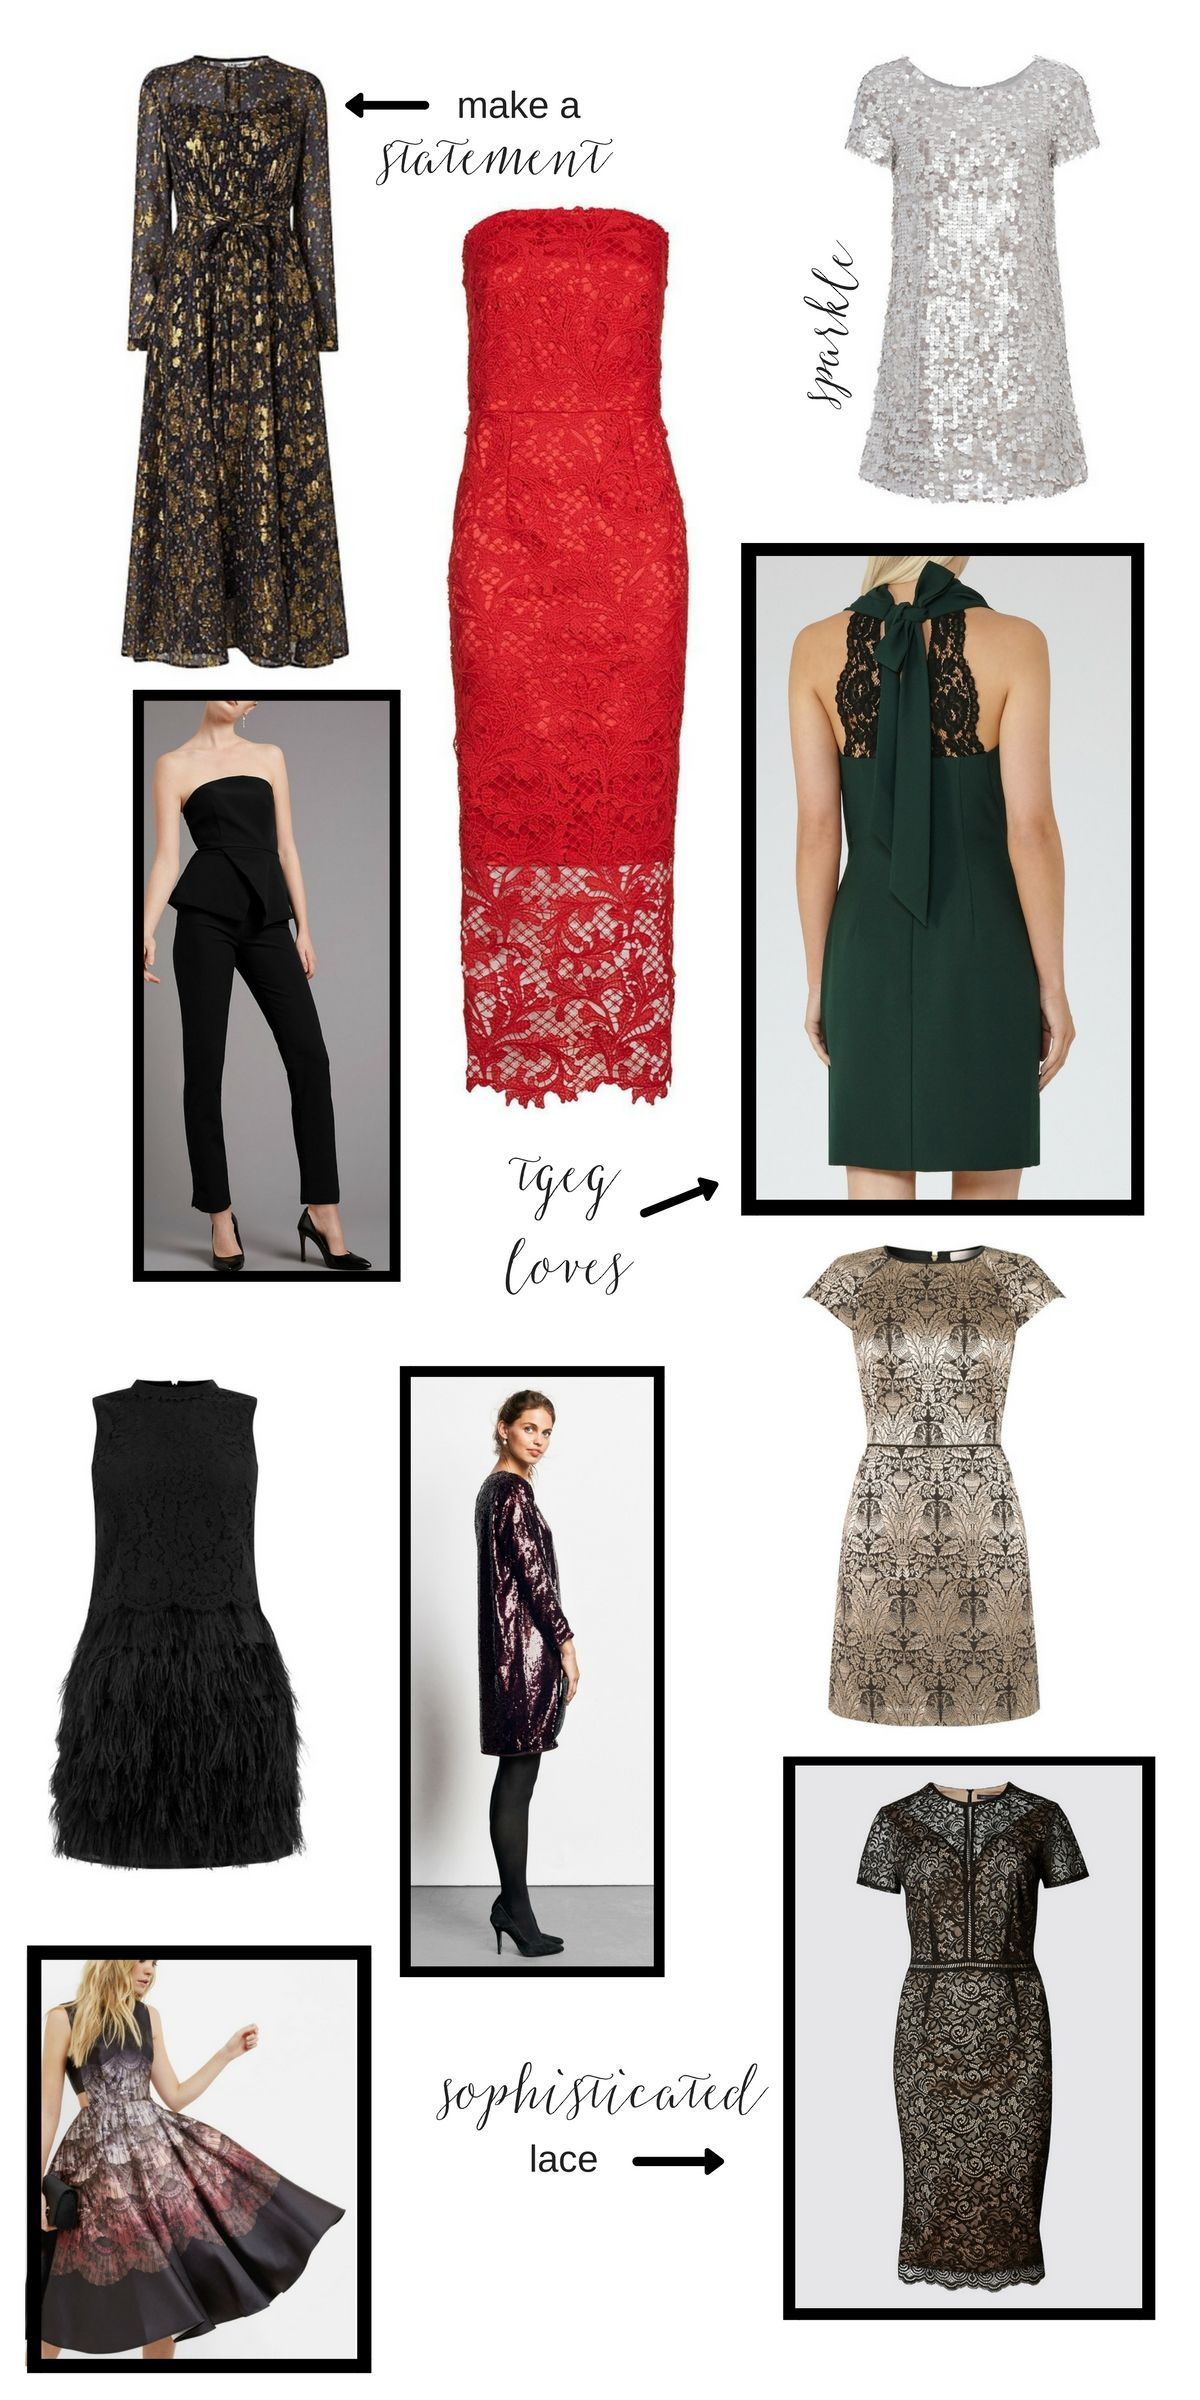 10 party dresses for the festive season